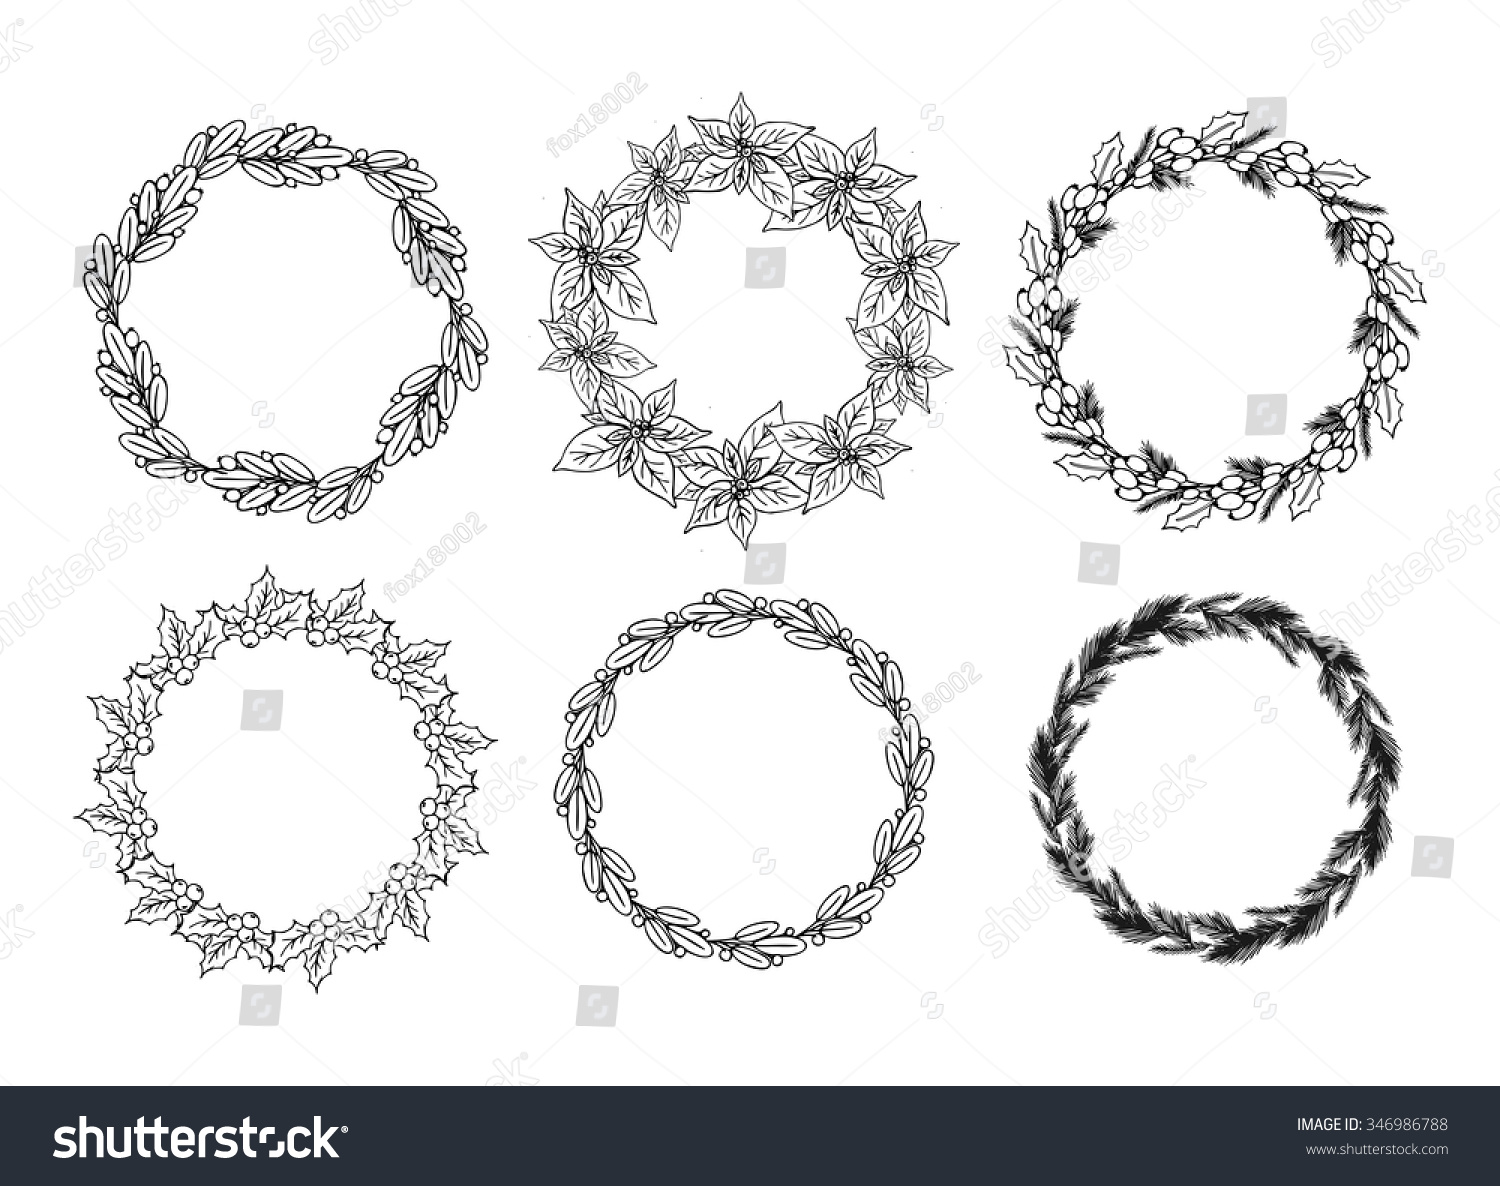 Vintage Hand Drawn Christmas Floral Wreath Stock Vector 346986788